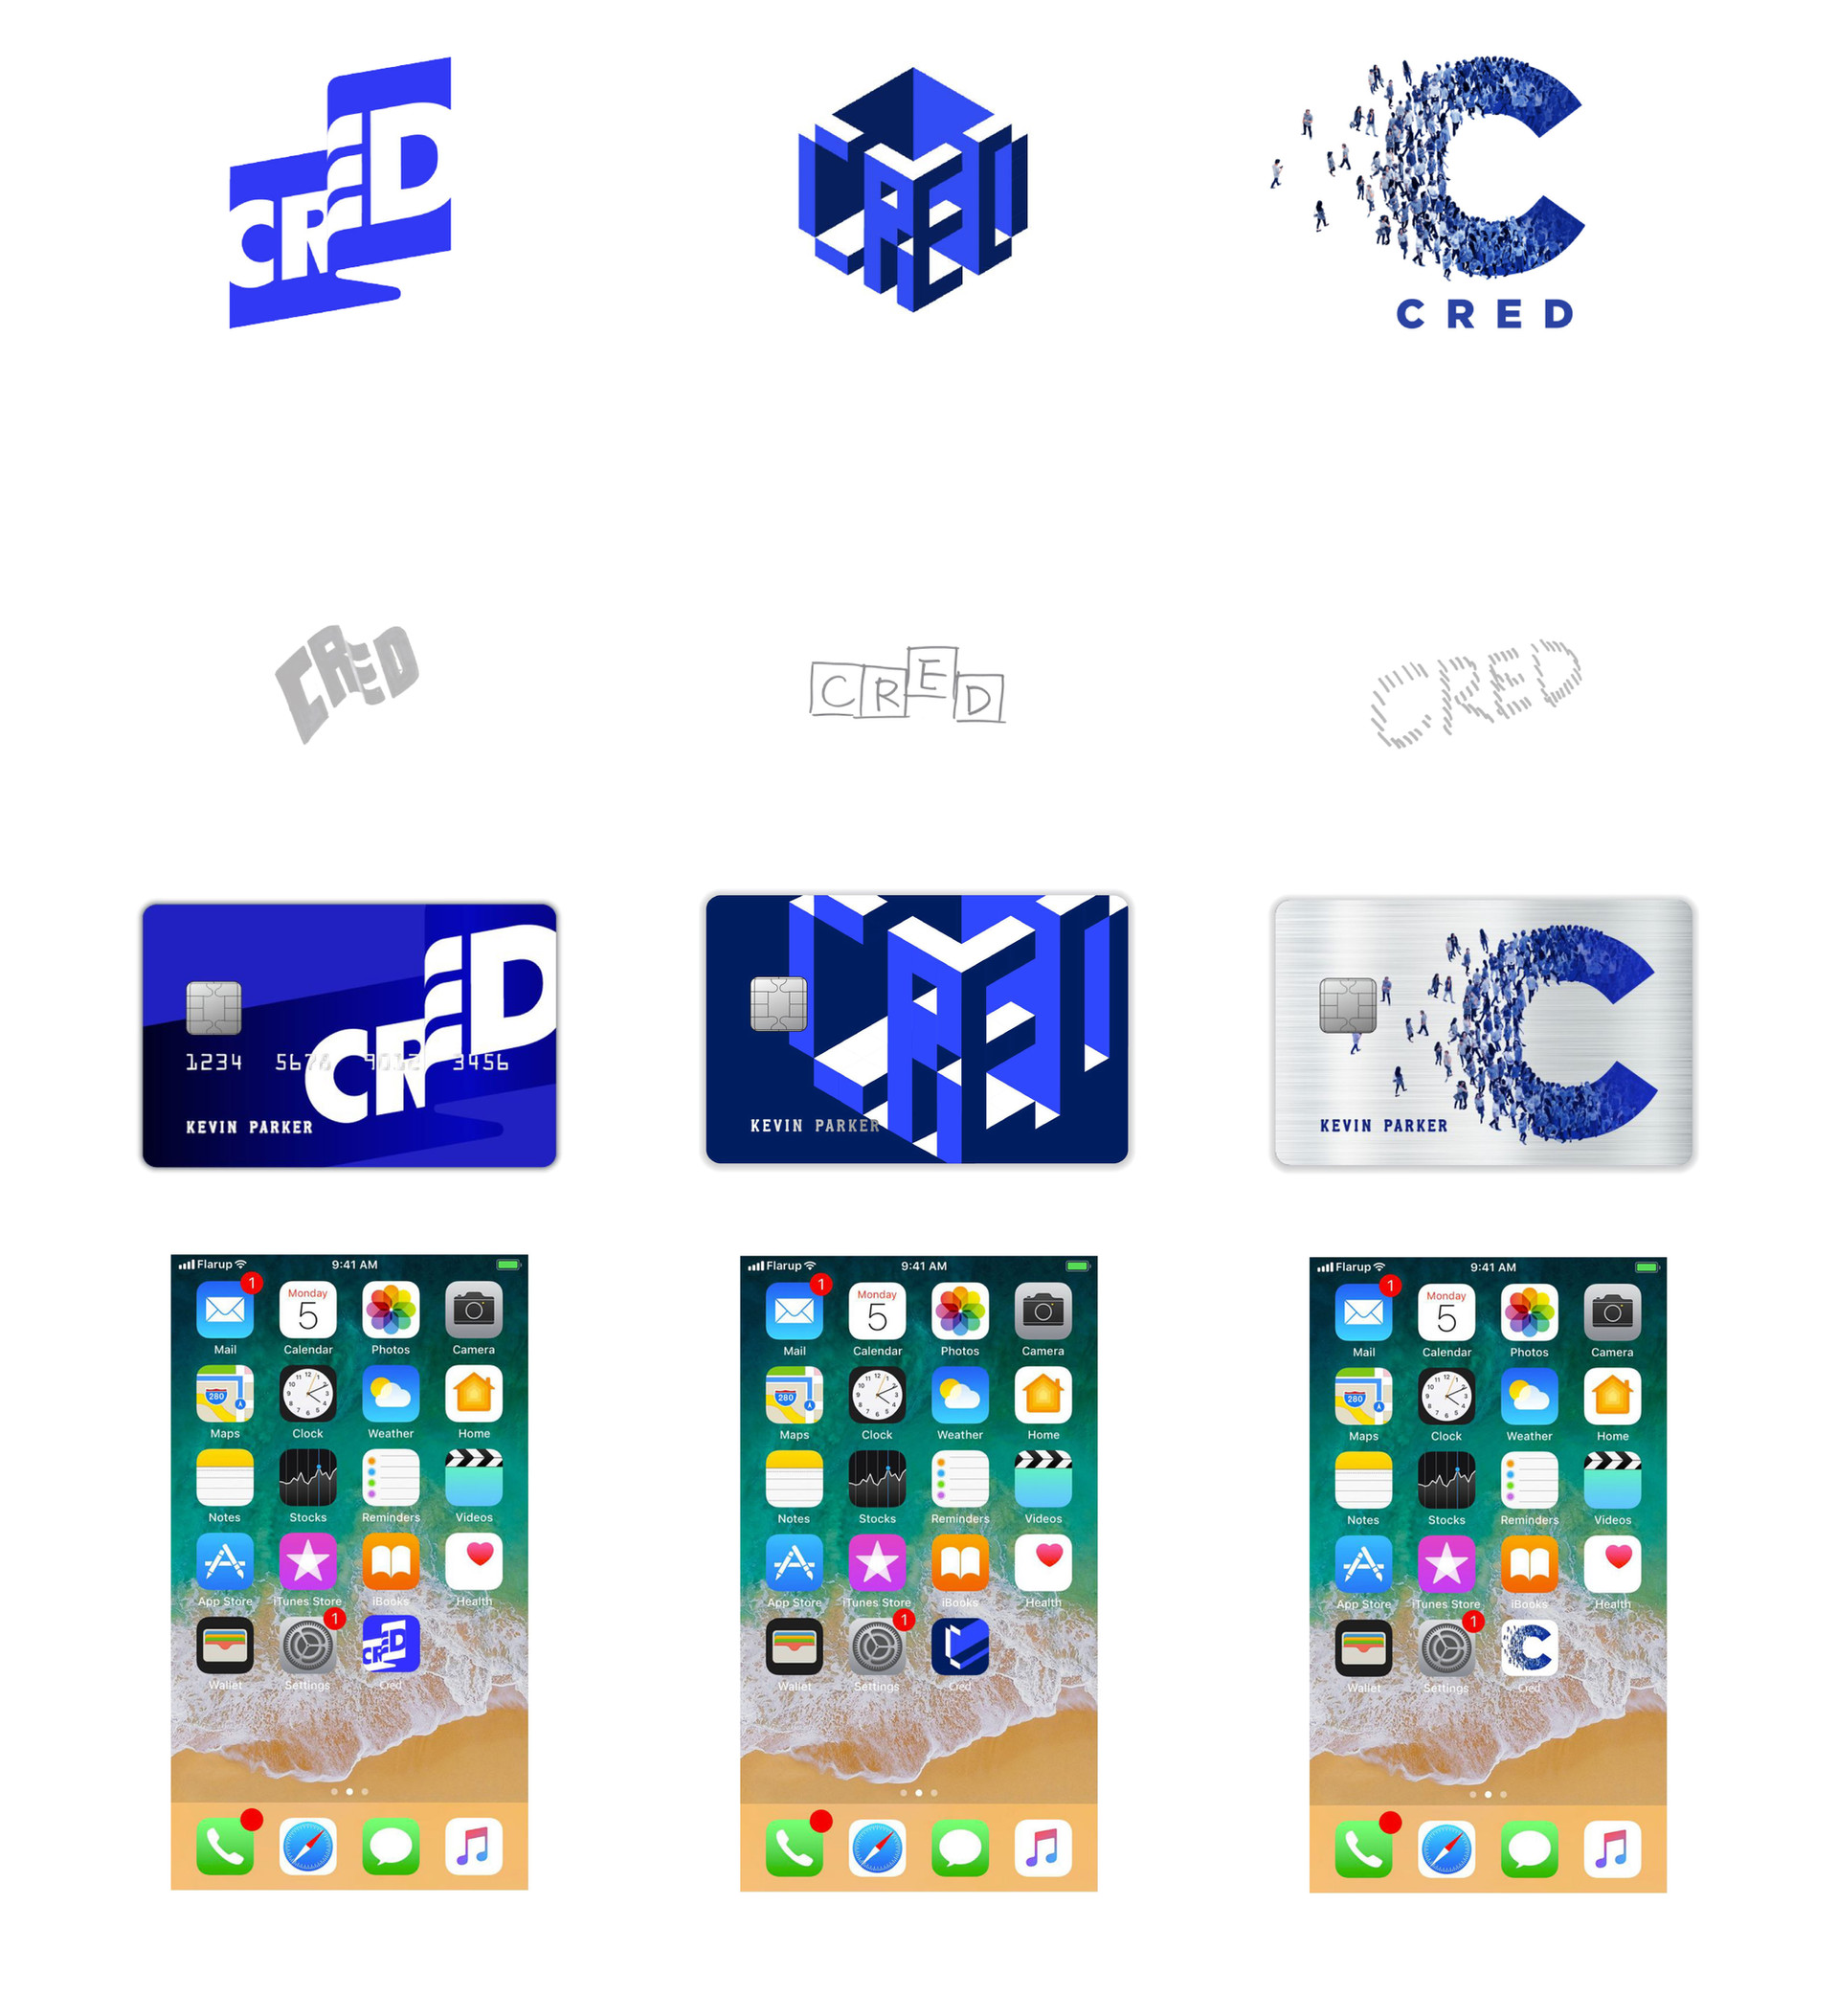 Cred Design Process 04.jpg